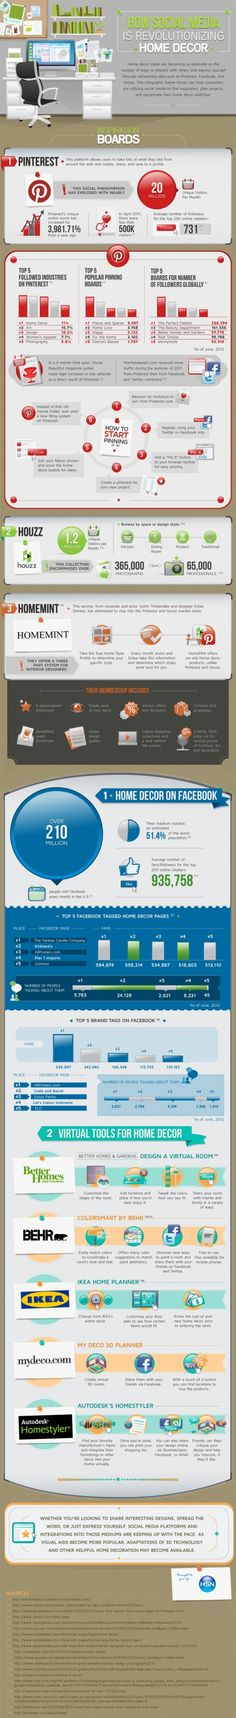 How social media is revolutionizing Home Decor - Infographic